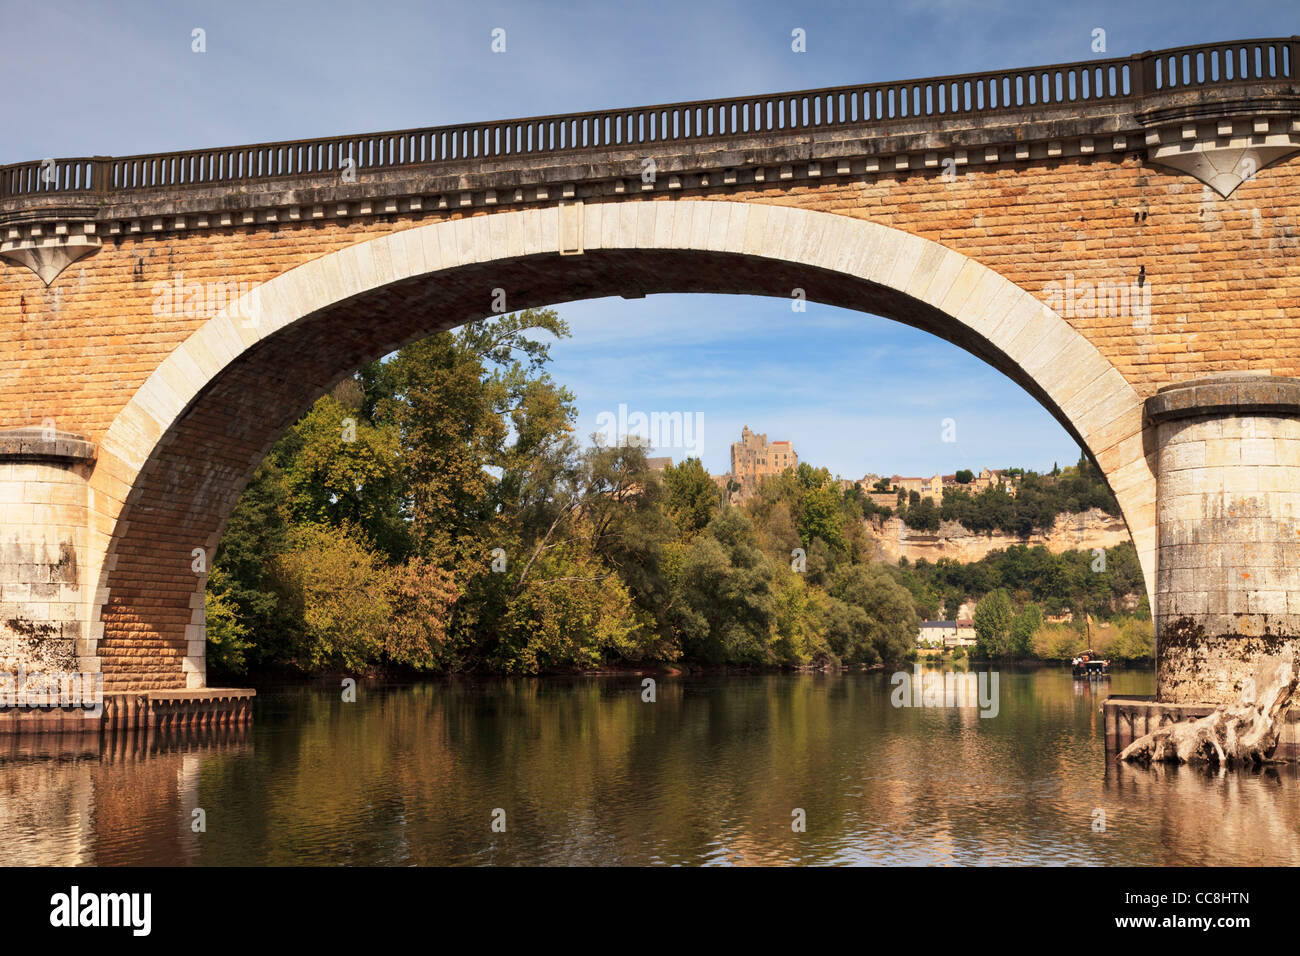 Beautiful old bridge on the River Dordogne at Beynac-et-Cazenac, Limousin, France, on a summer afternoon. - Stock Image